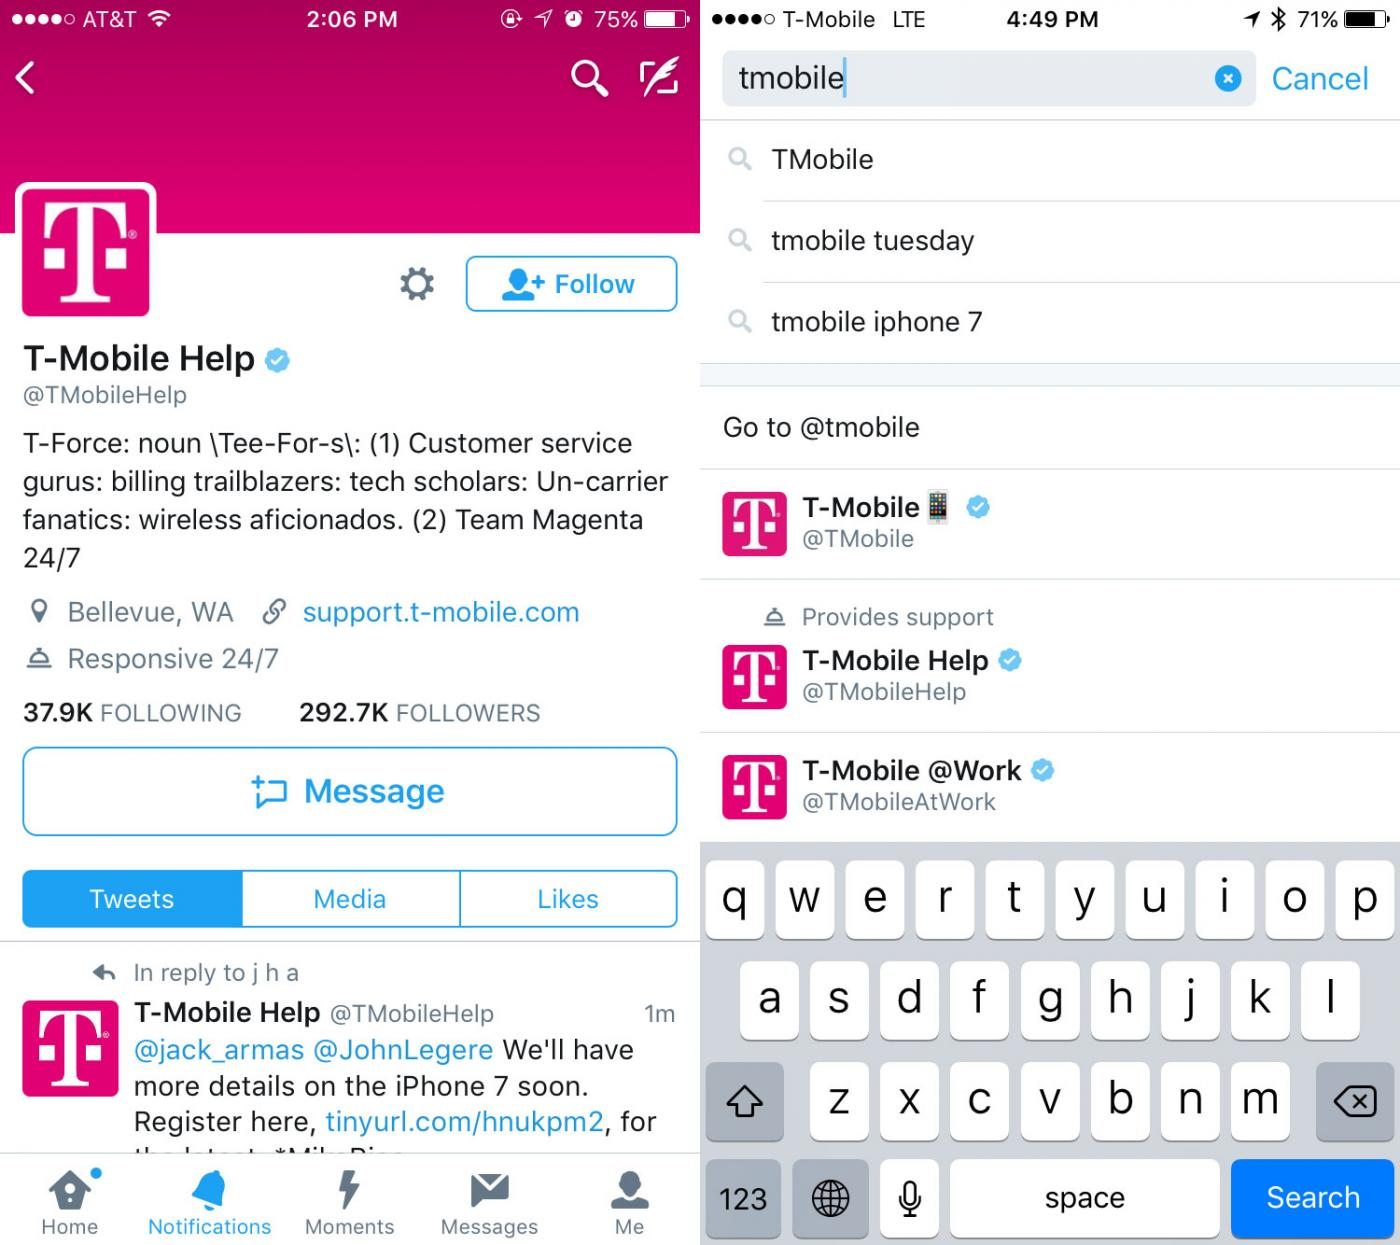 Twitter Conducts New Study into Customer Service Response and Expectations | Social Media Today